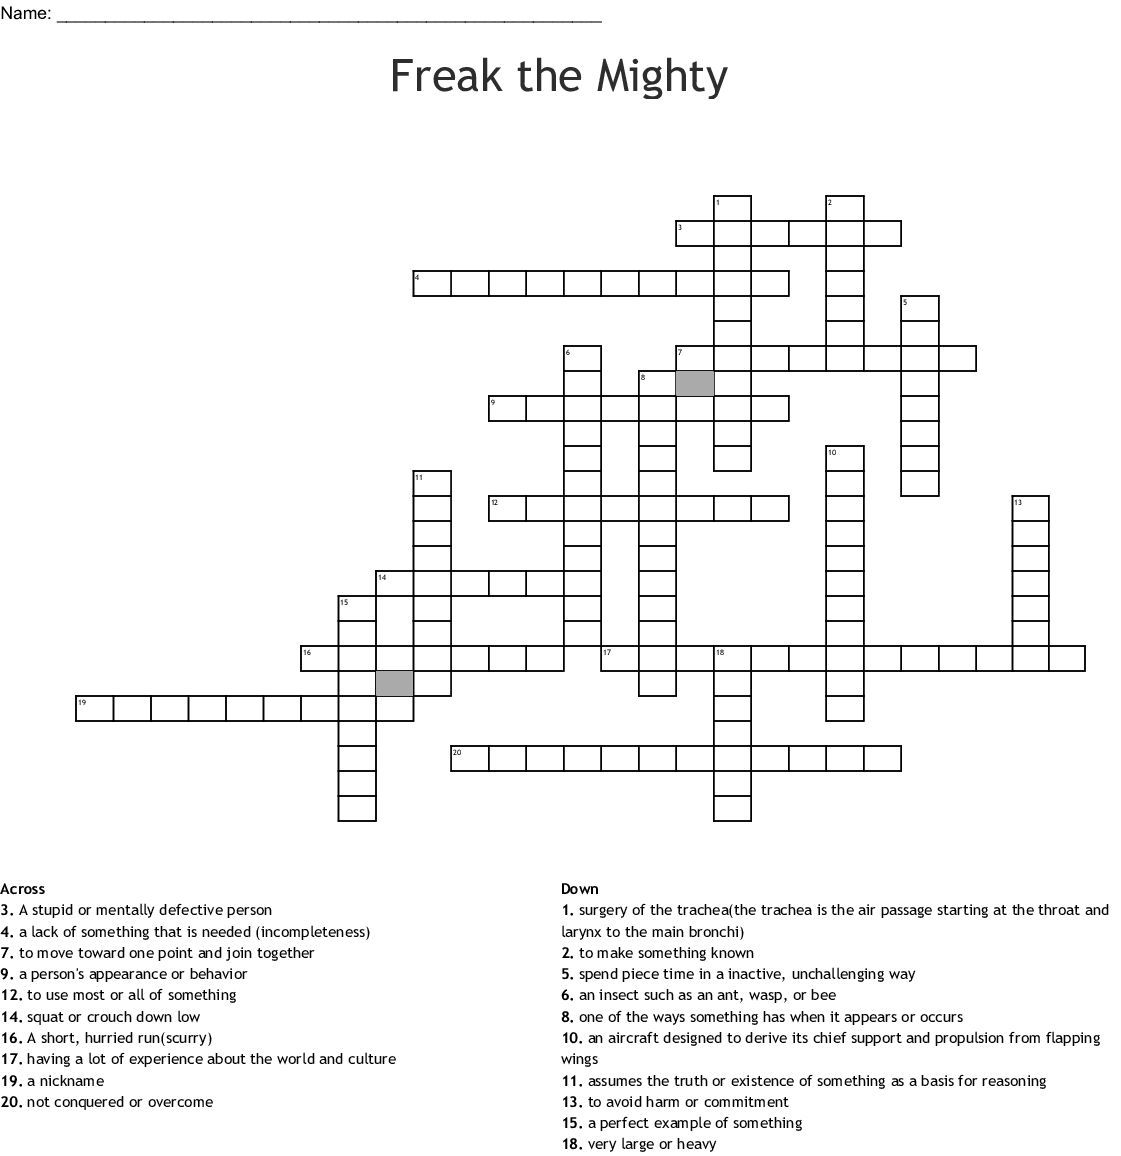 Freak The Mighty Chapters 1 8 Crossword Wordmint